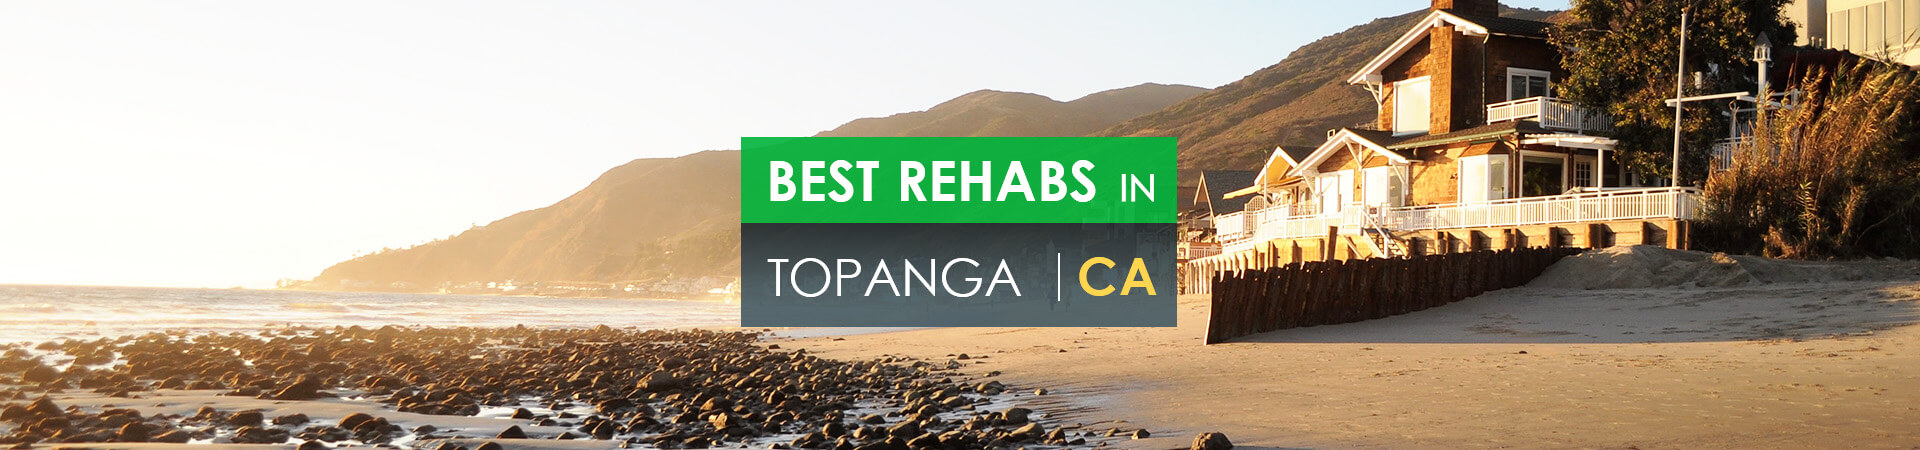 Best rehabs in Topanga, CA